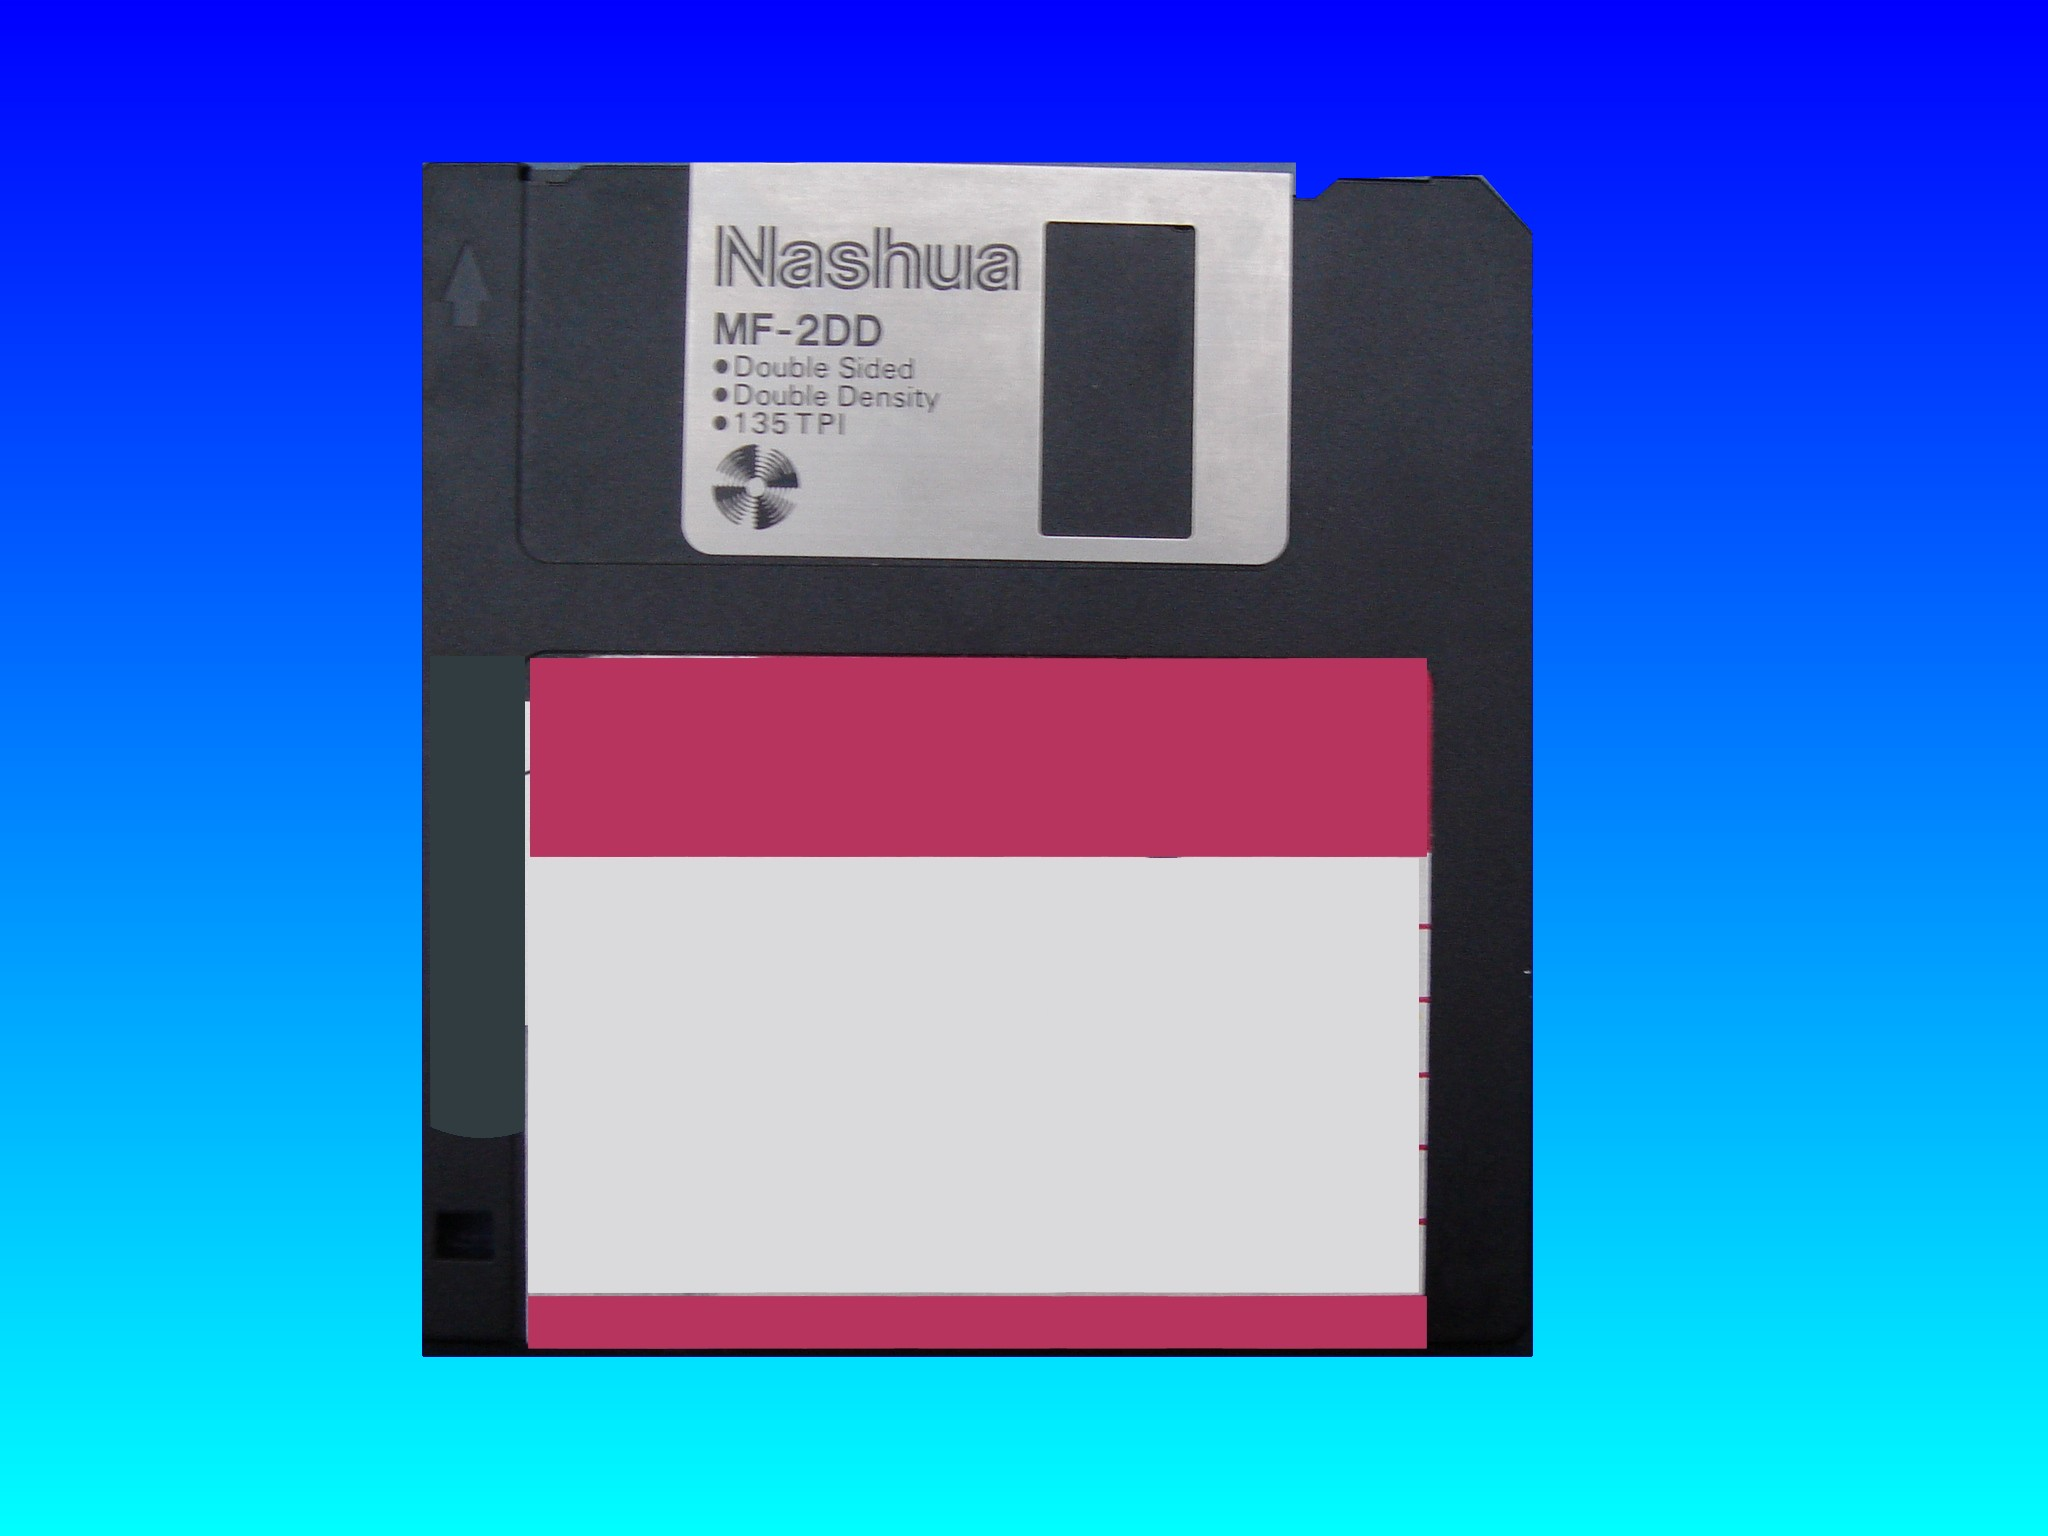 Conversion and Transfer of old clarisworks text and spreadsheet documents and storing files on modern USB or CD.